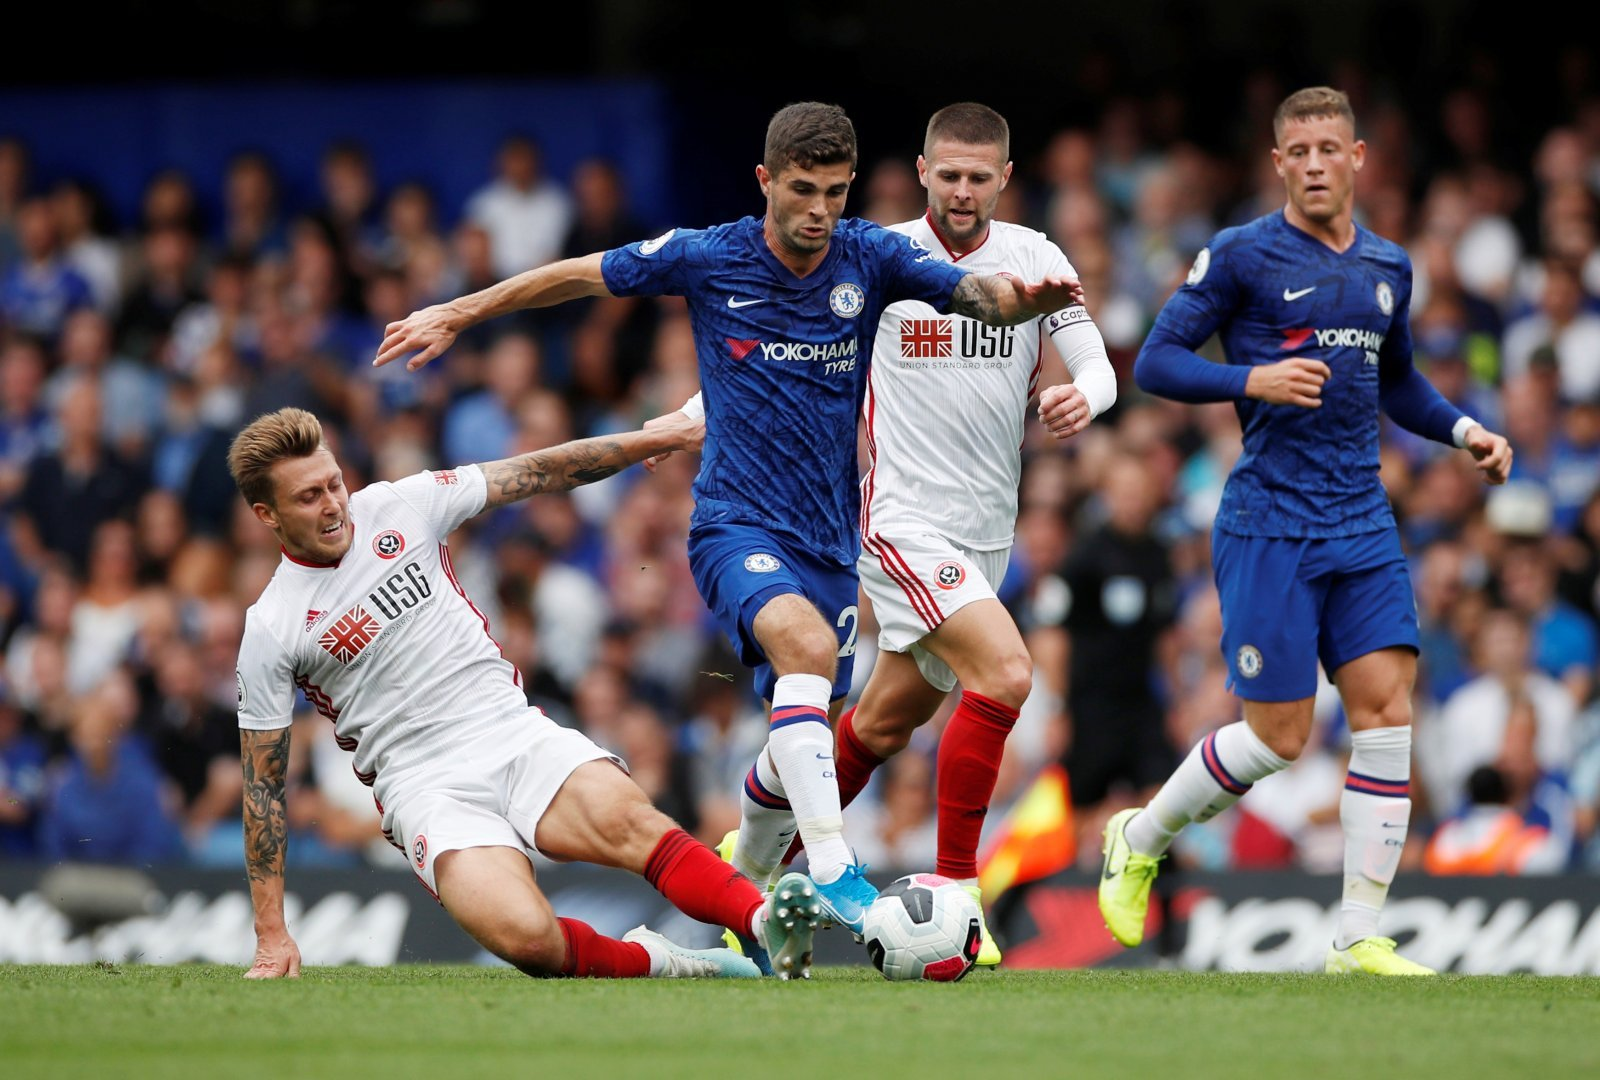 Chelsea: Fans praise Christian Pulisic for build-up play before Marcos Alonso's goal